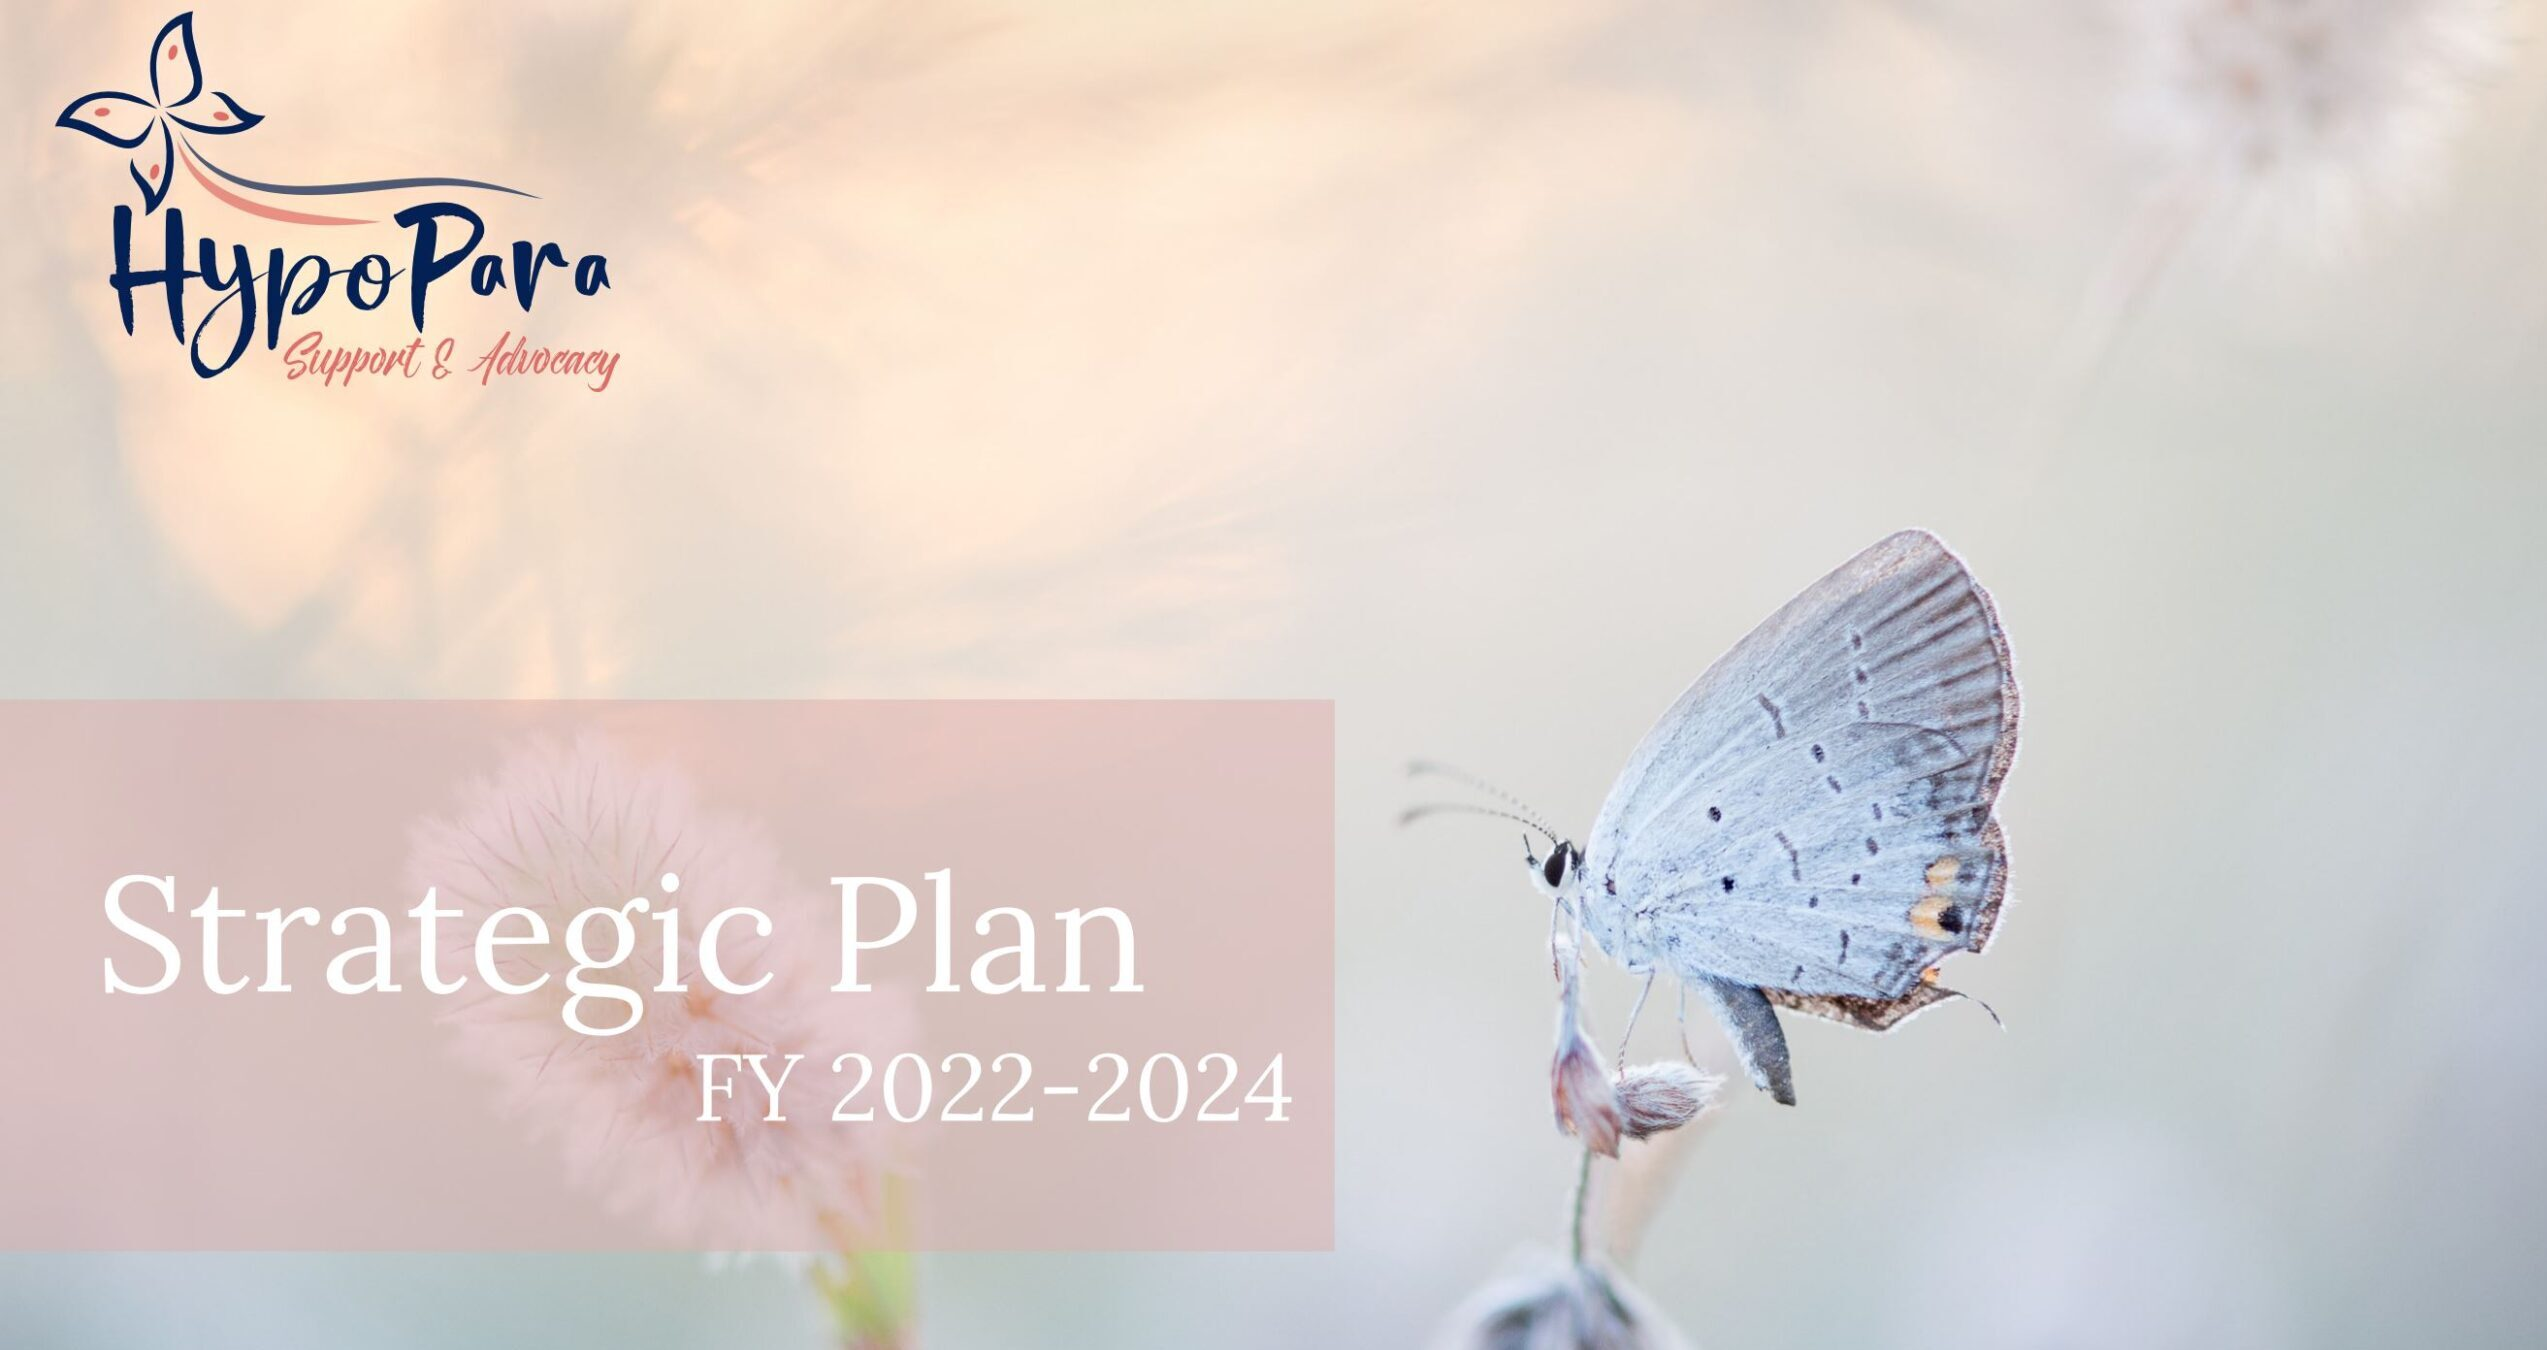 White butterfly sitting on a plant bud, with a pale pink background. HypoPara Support and Advocacy's name and logo are in the upper left corner, and the title Strategic Plan, Fiscal Years 2022 to 2024 is printed in the lower left quadrant